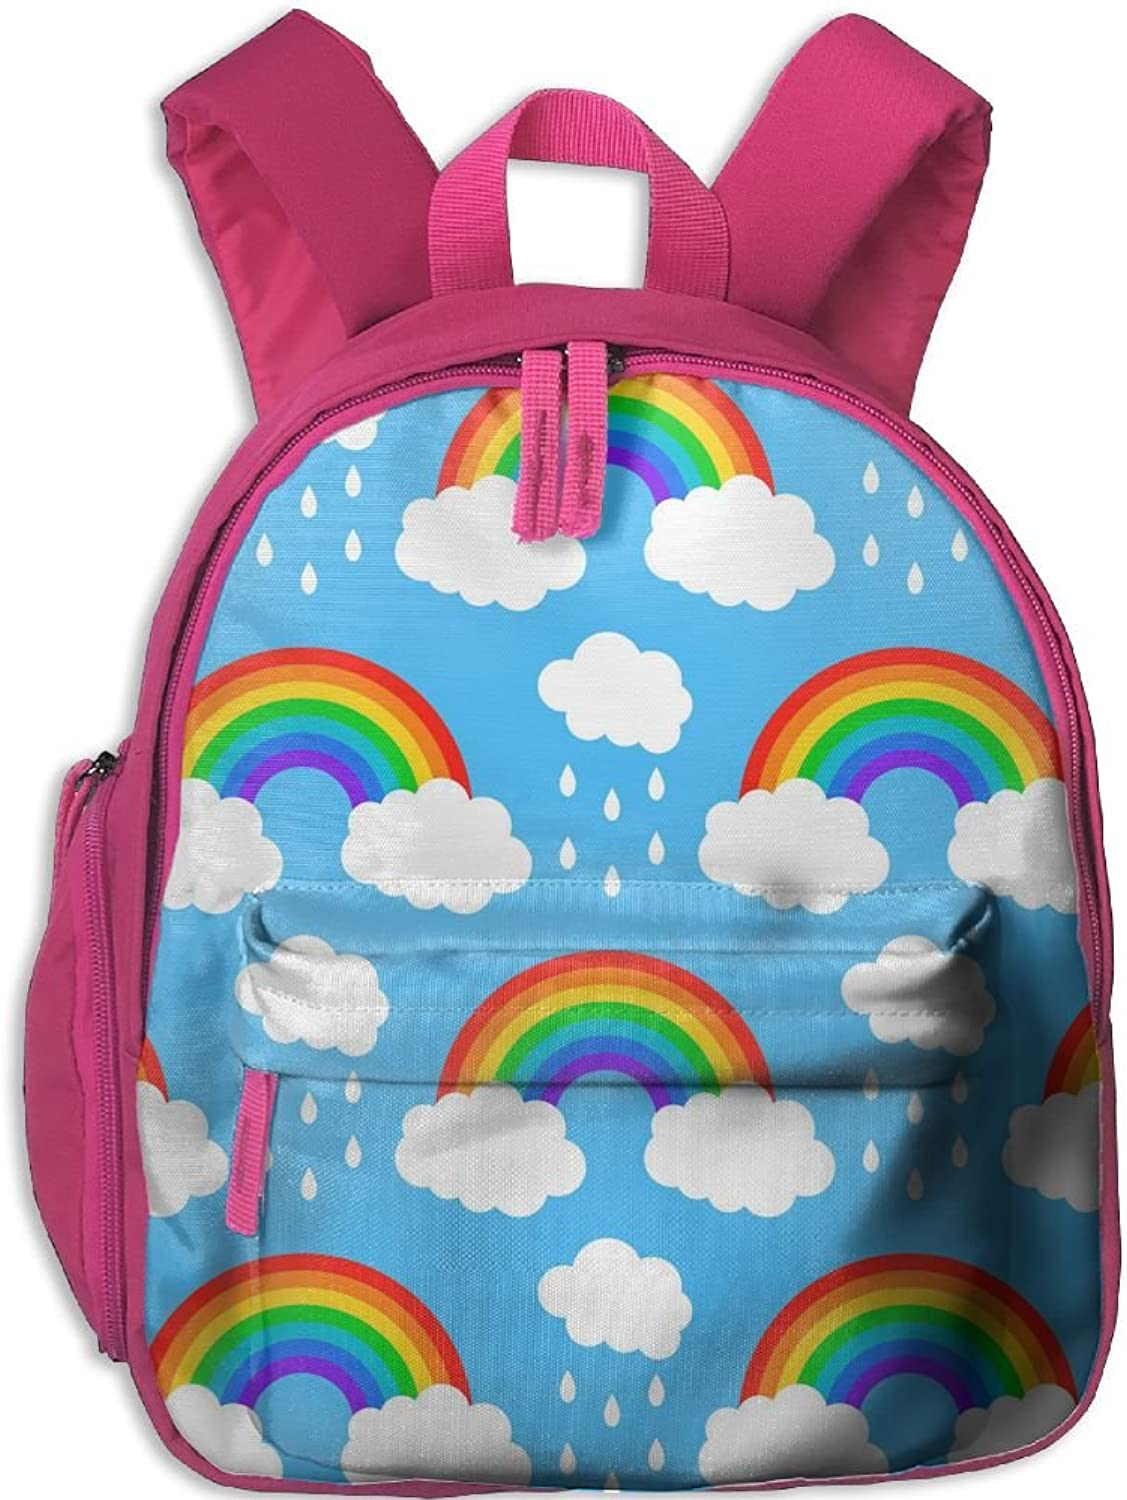 Pinta Gay Rainbow Cub Cool School Book Bag Backpacks for Girl's Boy's